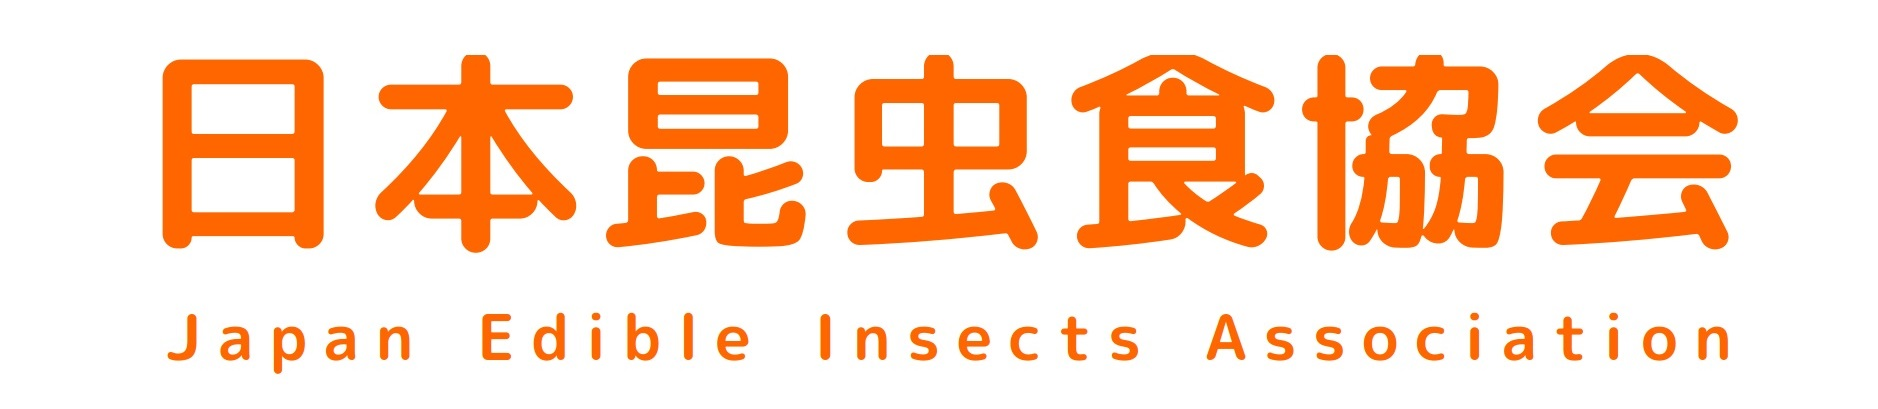 日本昆虫食協会  Japan Edible Insects Association